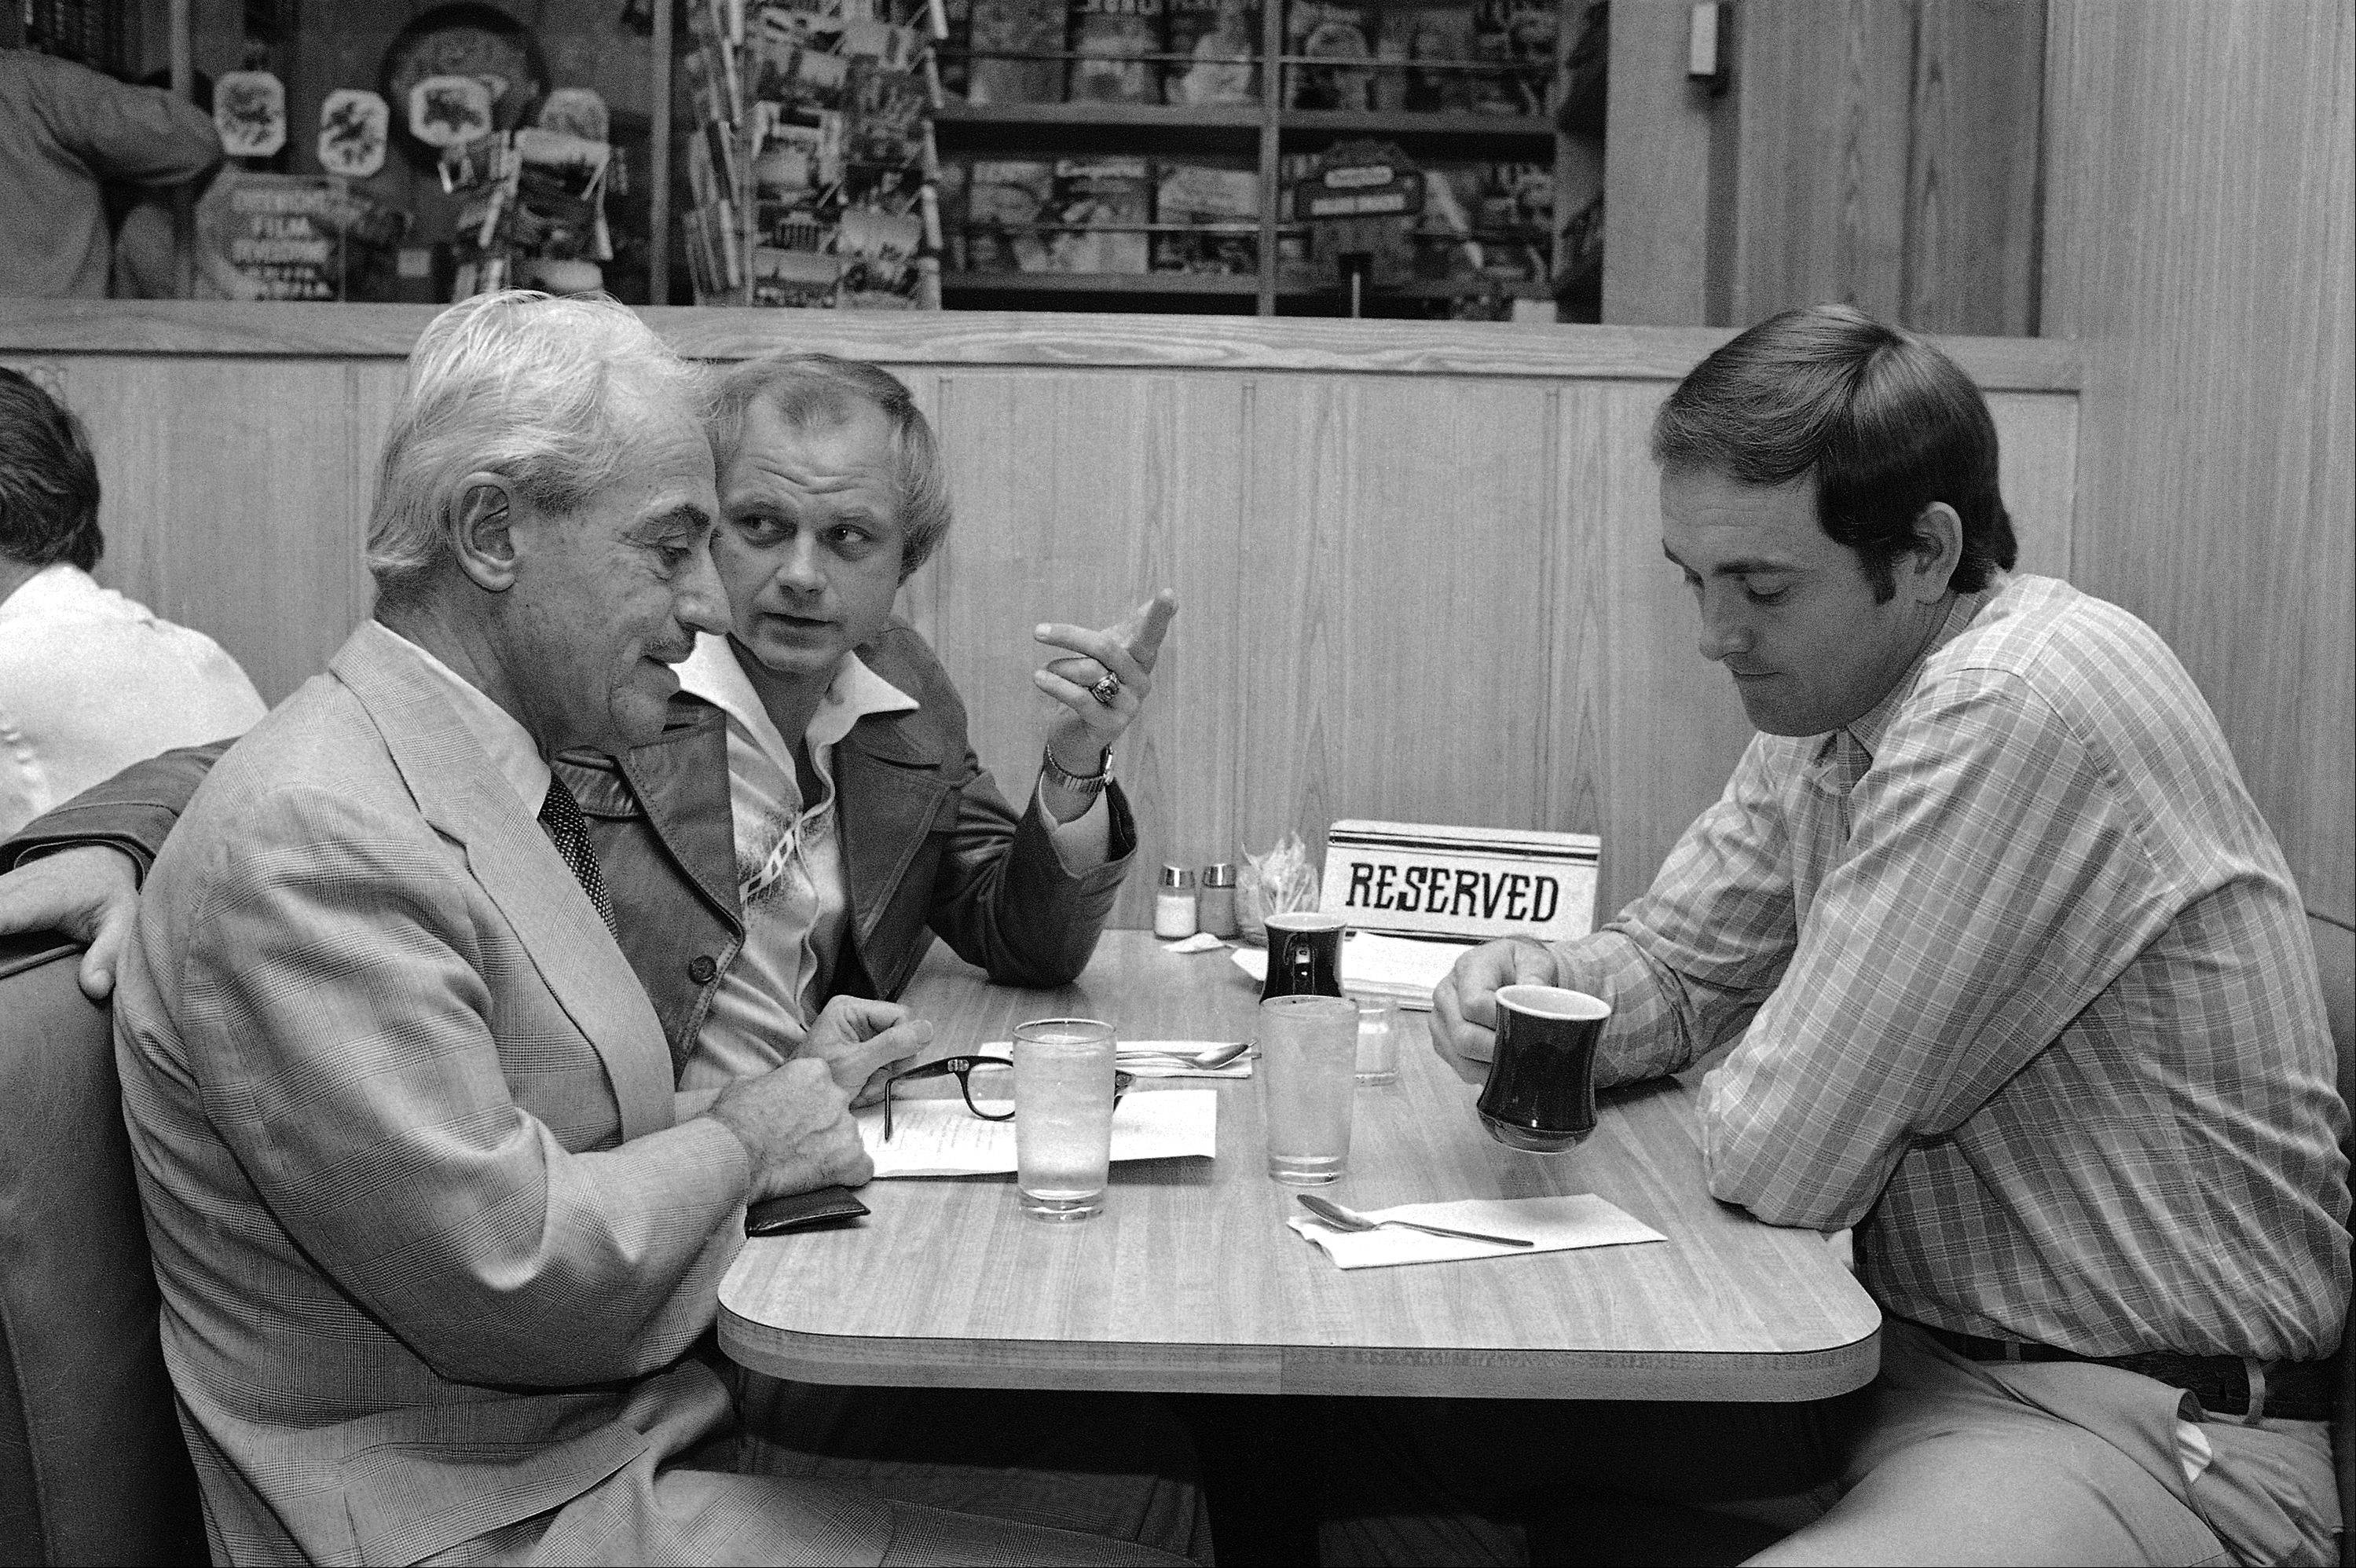 This May 22, 1980 file photo shows Marvin Miller, left, talking with Houston Astro players Joe Niekro, center and Nolan Ryan at a coffee shop prior to labor negotiations in New York. Miller, the union leader who created free agency for baseball players and revolutionized professional sports with multimillion dollar contracts, died Tuesday, Nov. 27, 2012 in New York. He was 95.